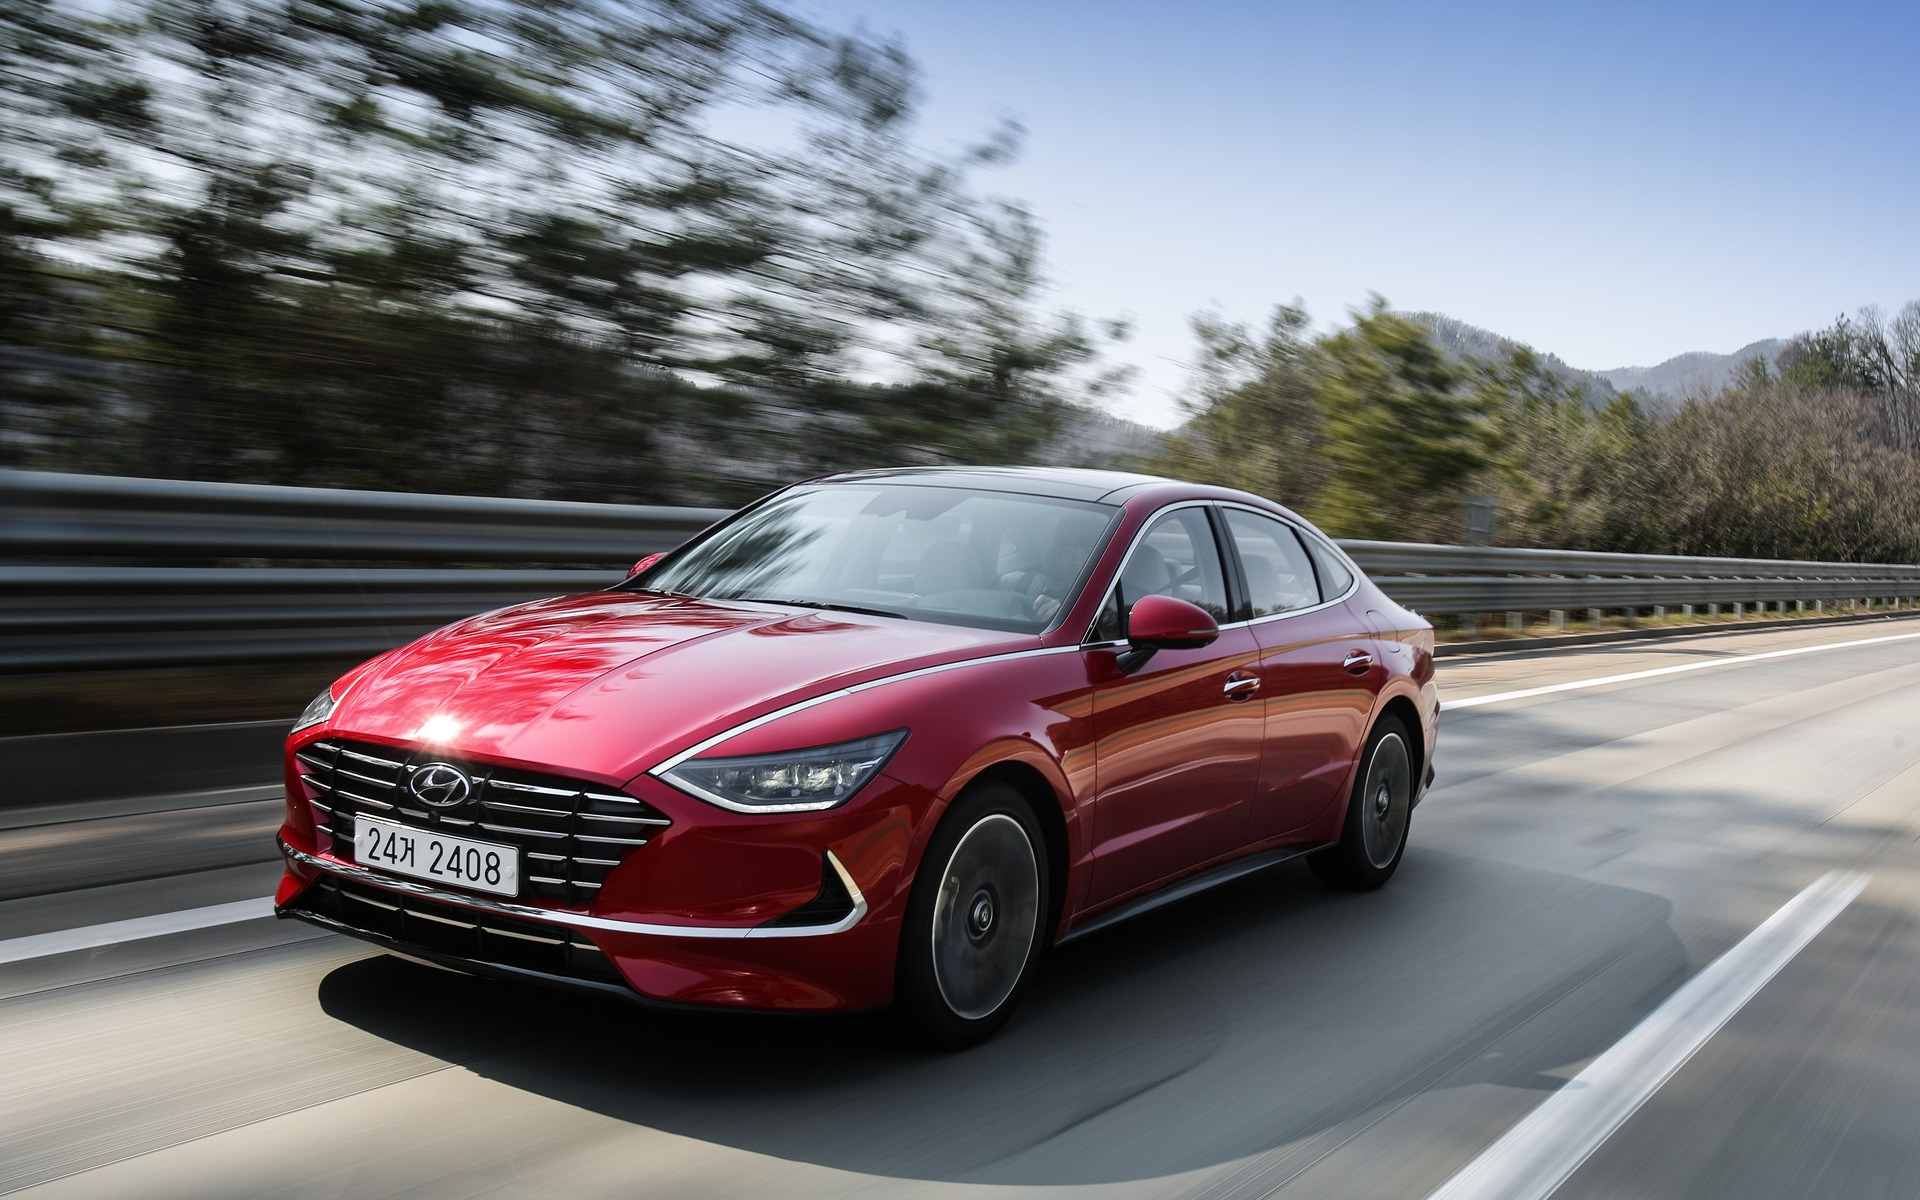 2020 Hyundai Sonata A More Assertive Look The Car Guide